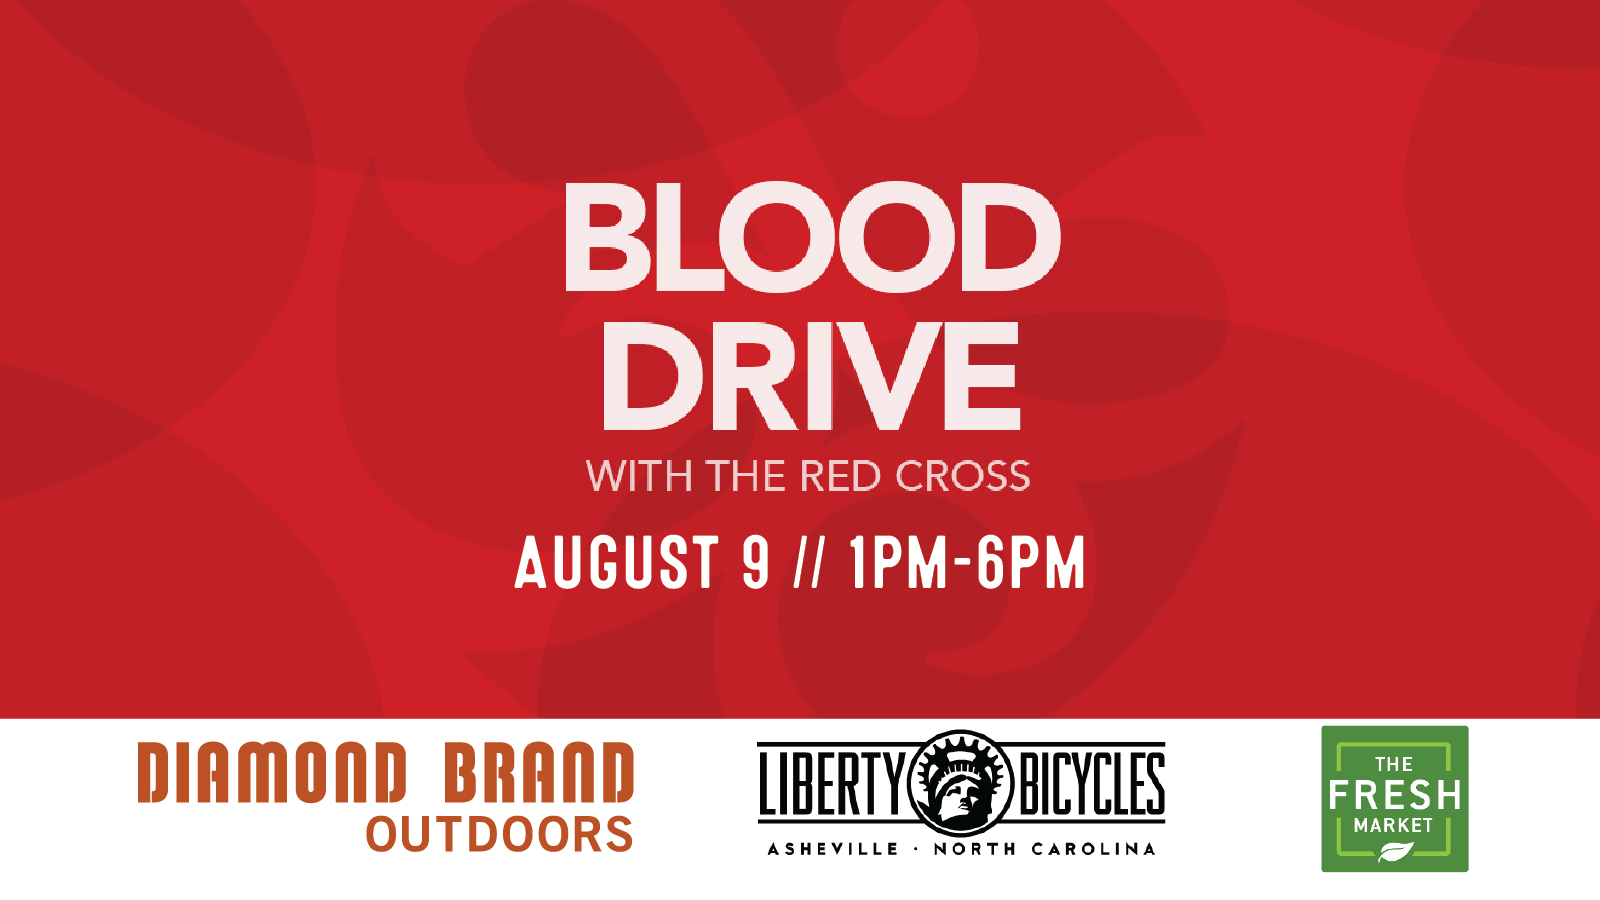 American Red Cross Blood Drive Diamond Brand Outdoors